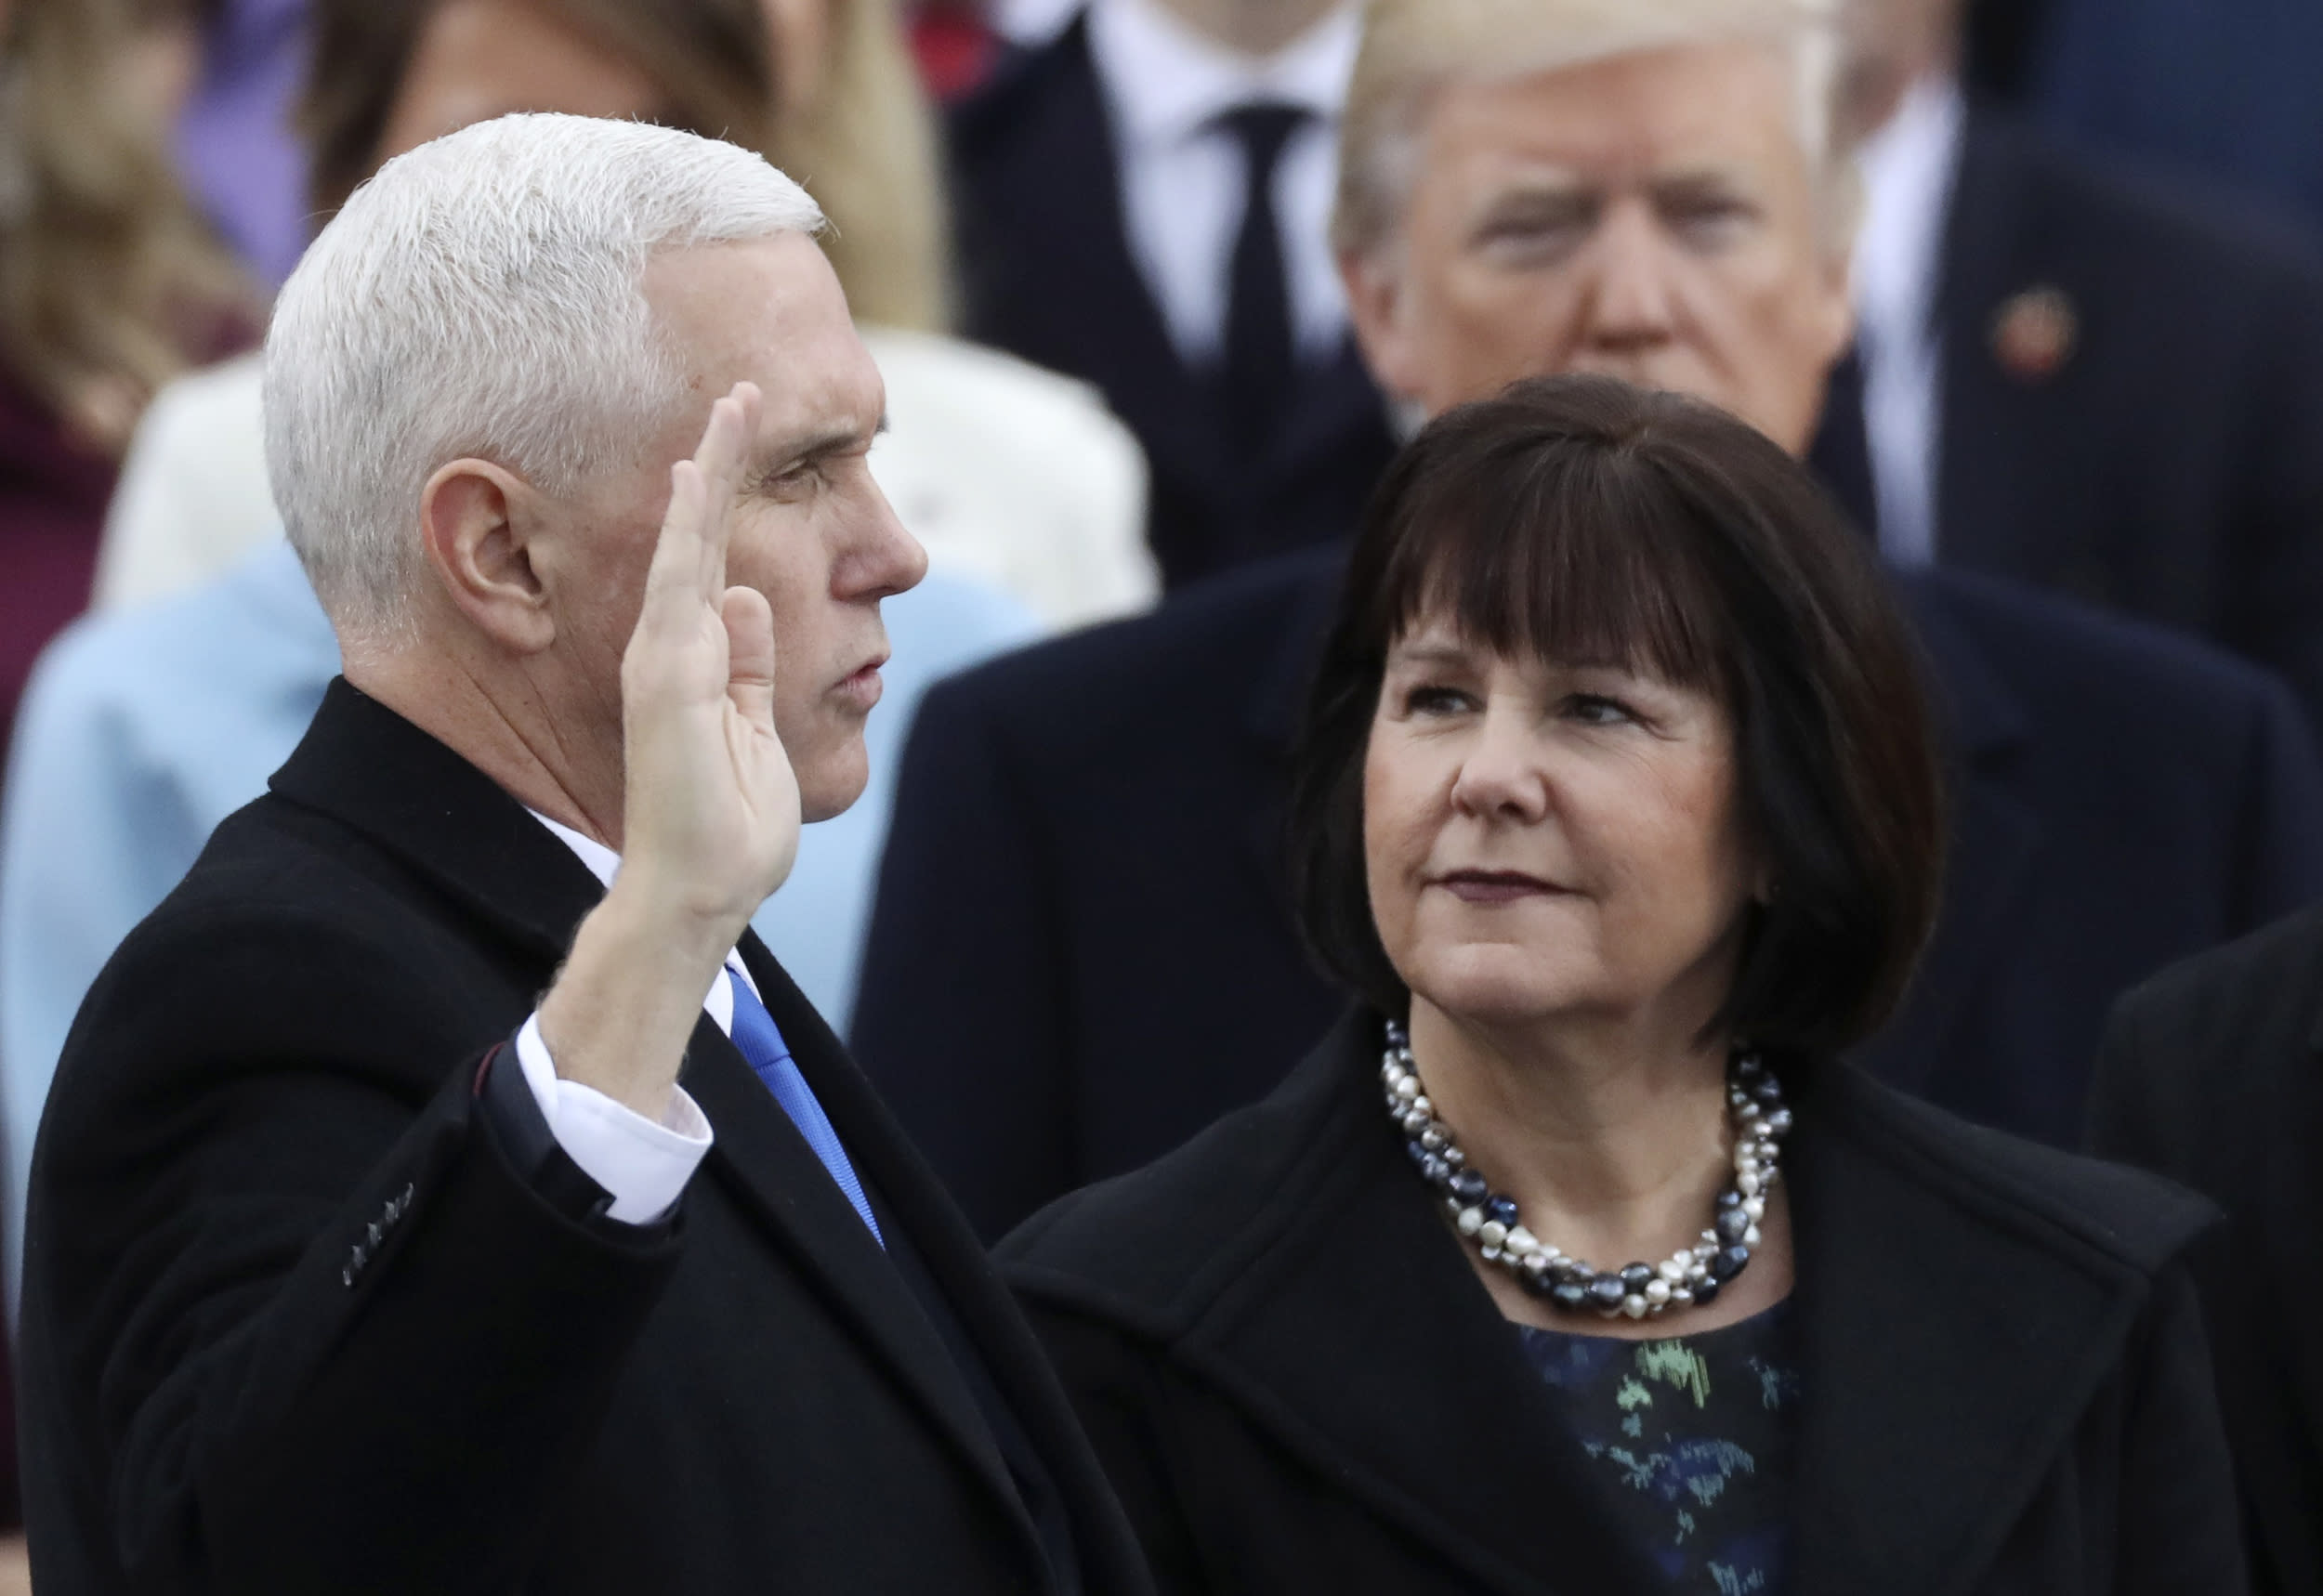 <p>Vice President Mike Pence is sworn in as his wife Karen Pence watches during inauguration ceremonies swearing in Donald Trump as the 45th president of the United States on the West front of the U.S. Capitol in Washington, U.S., January 20, 2017.</p>  <p>(REUTERS/Carlos Barria)</p>